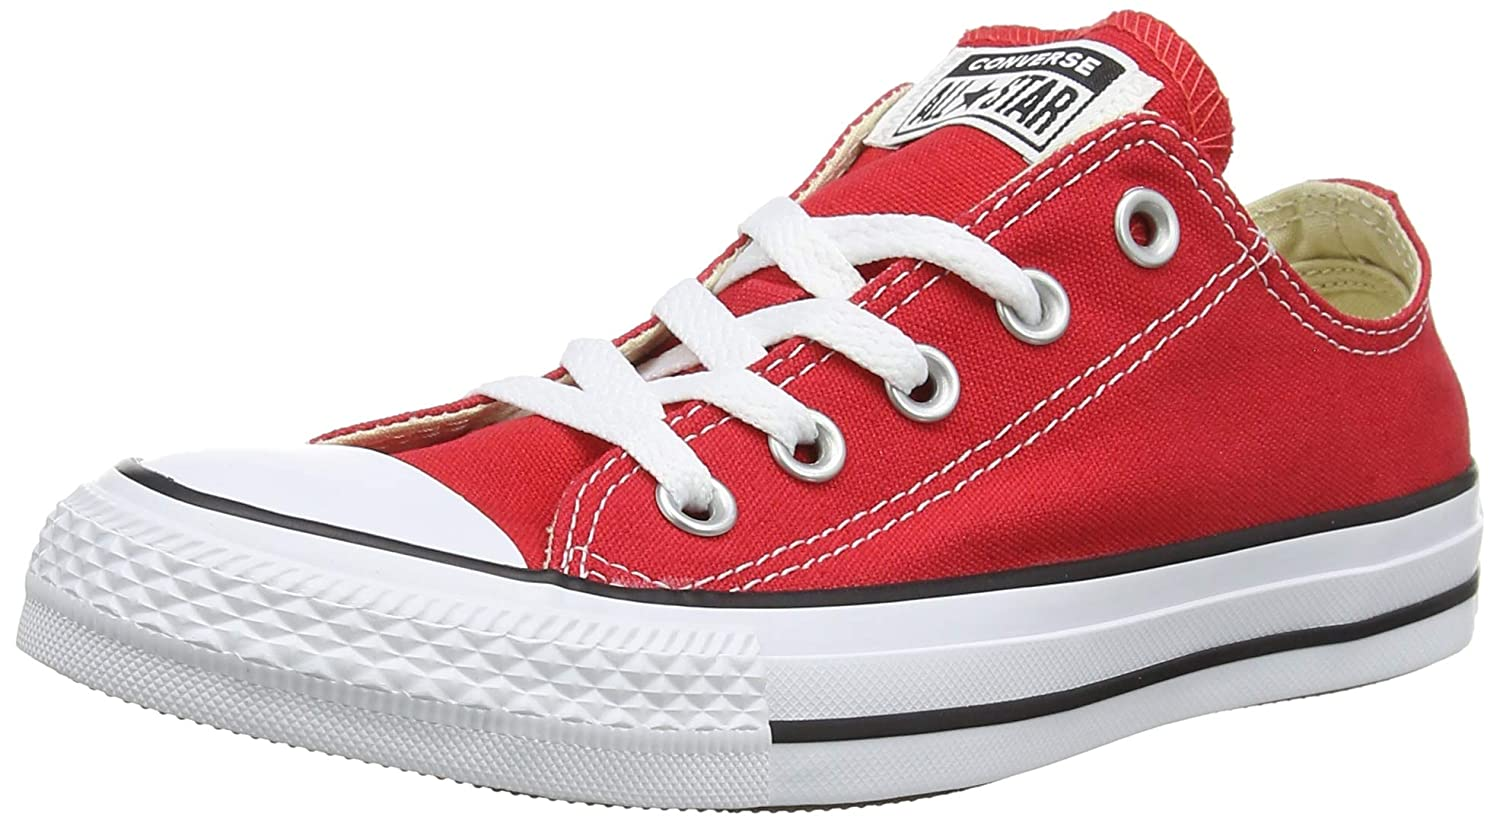 Converse Chuck Taylor All Star Low Shoes 659217C